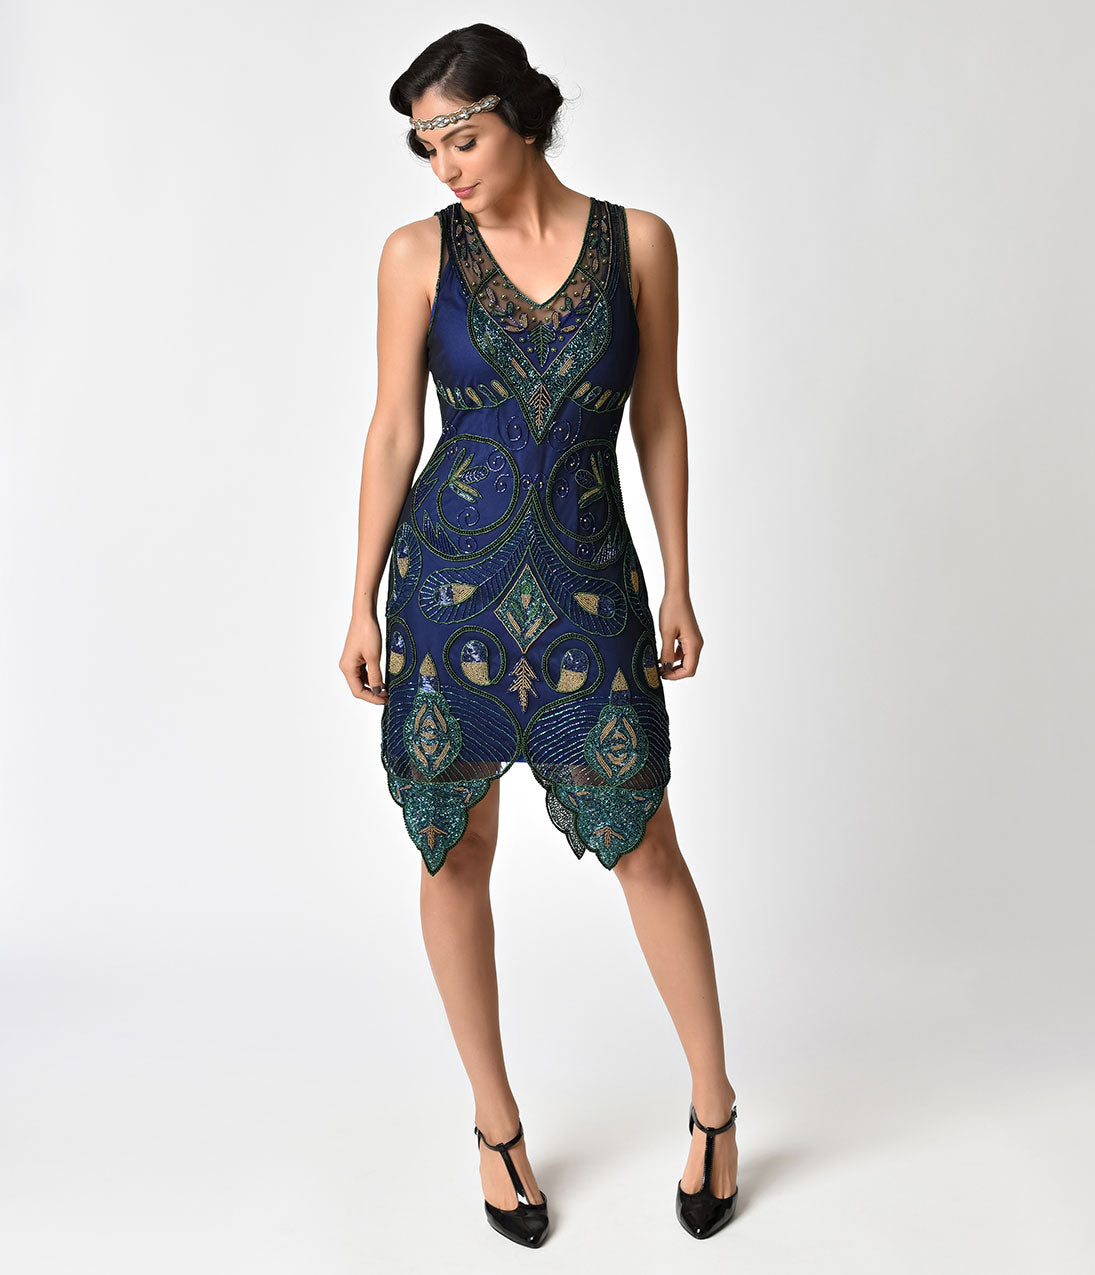 1920s Style Dresses, Flapper Dresses 1920s Style Navy Blue  Green Beaded Emma Flapper Dress $122.00 AT vintagedancer.com